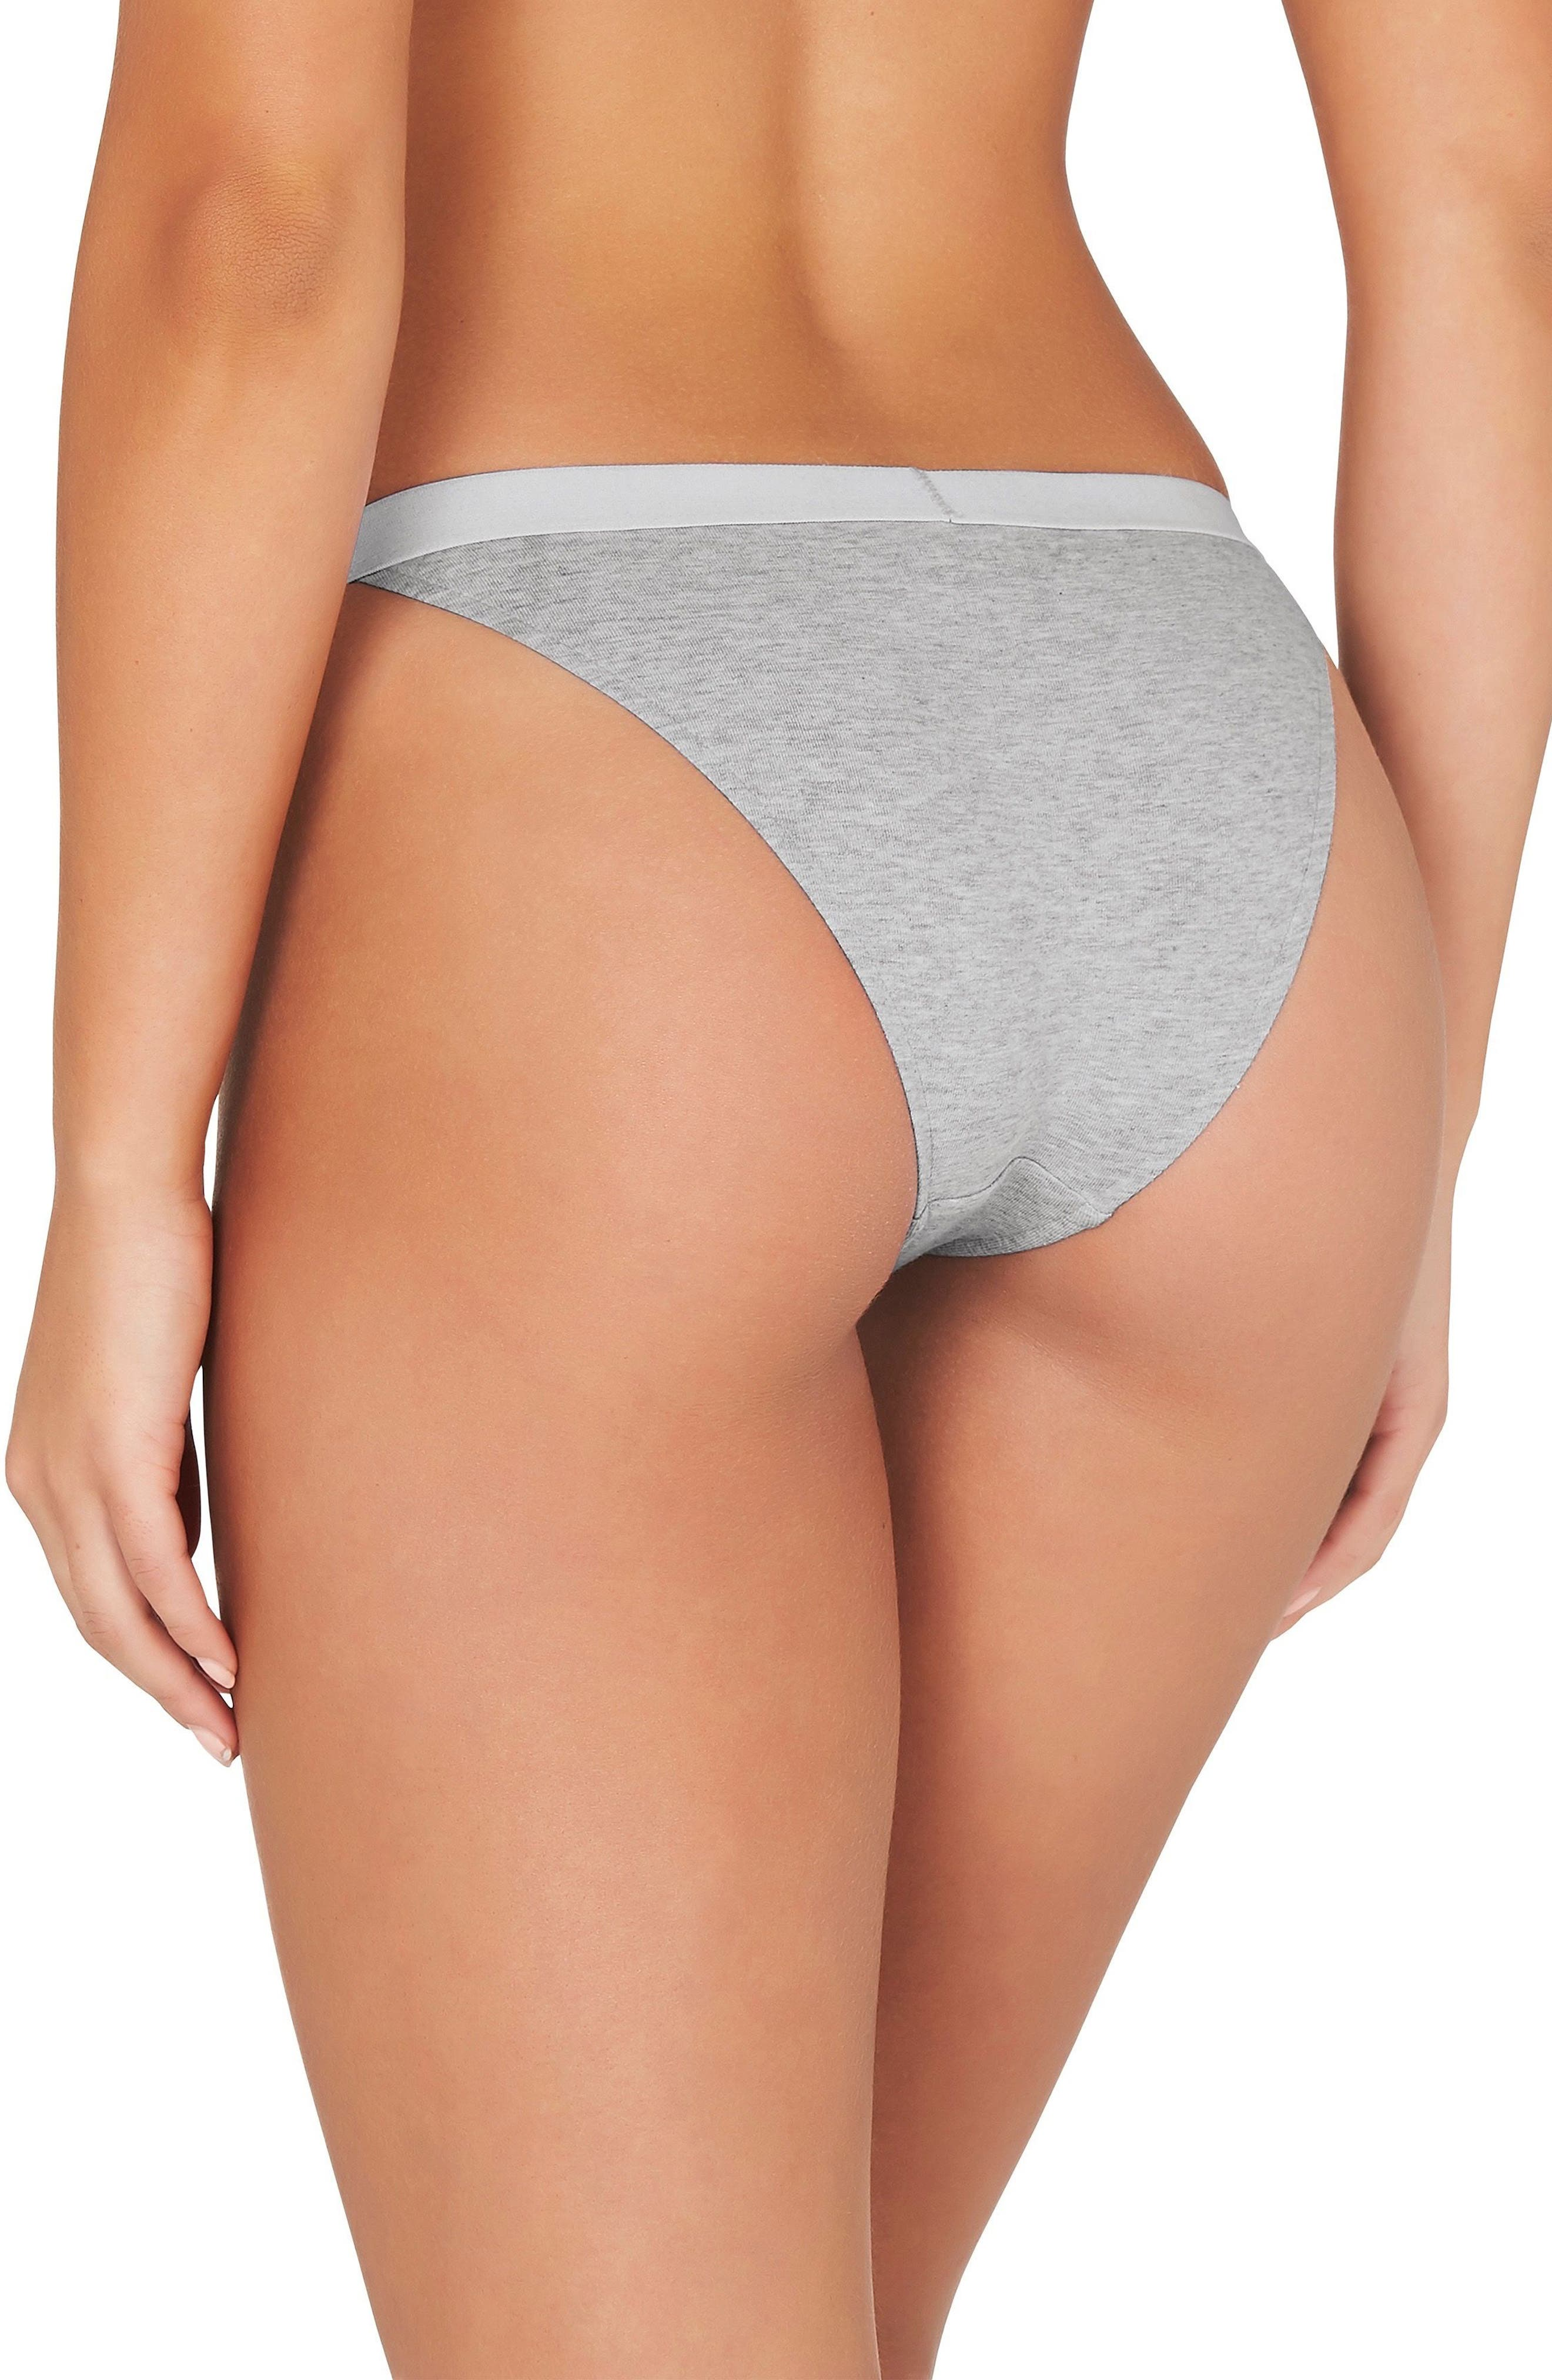 2-Pack Stretch Organic Cotton Bikinis,                             Alternate thumbnail 3, color,                             Grey Marle